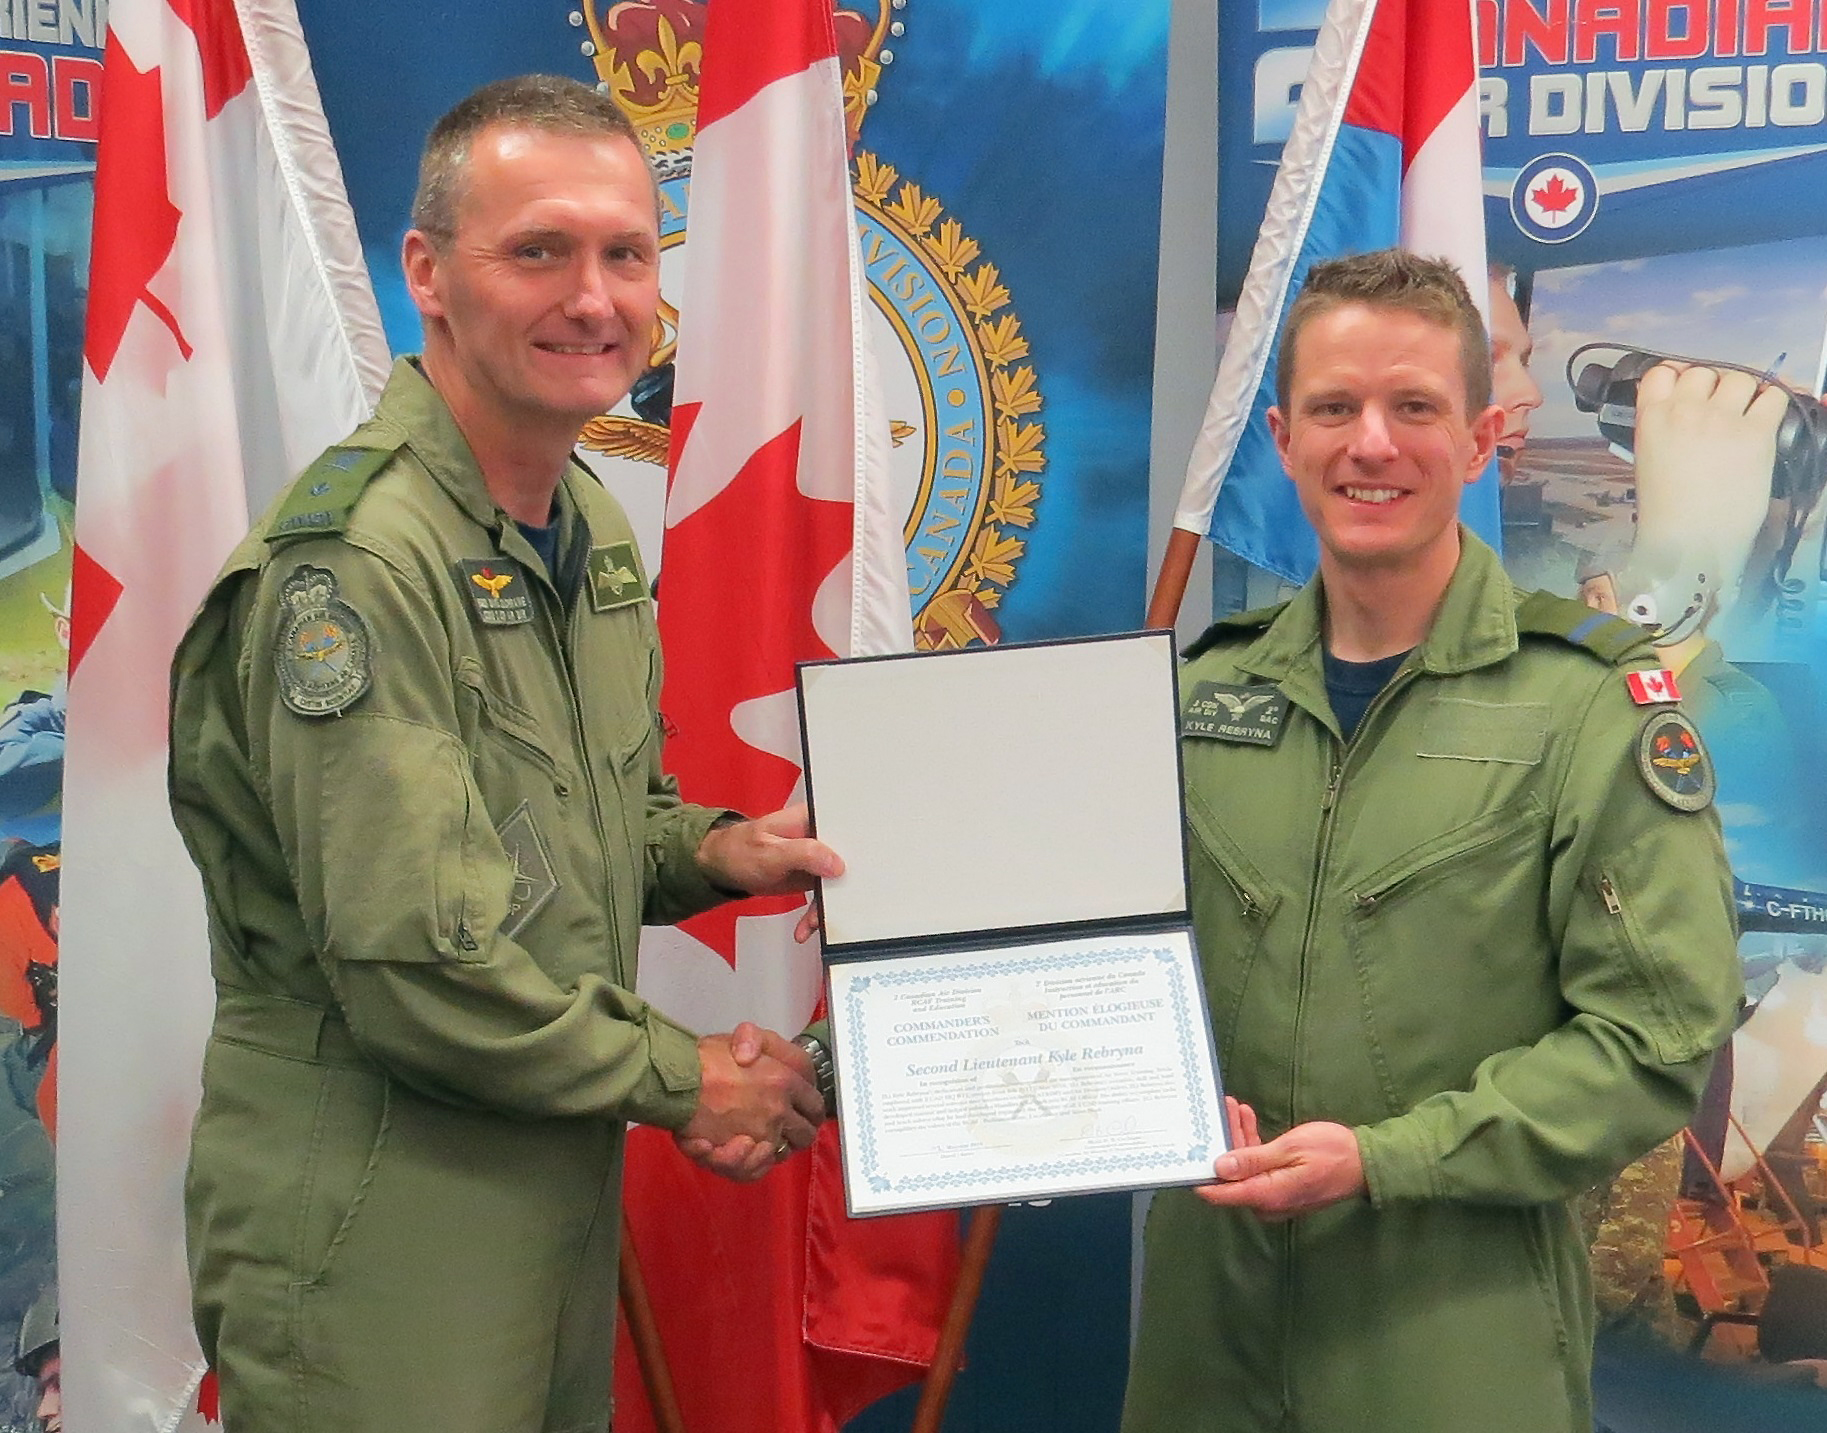 Two men in green flying uniforms hold a certificate in a folder between them.